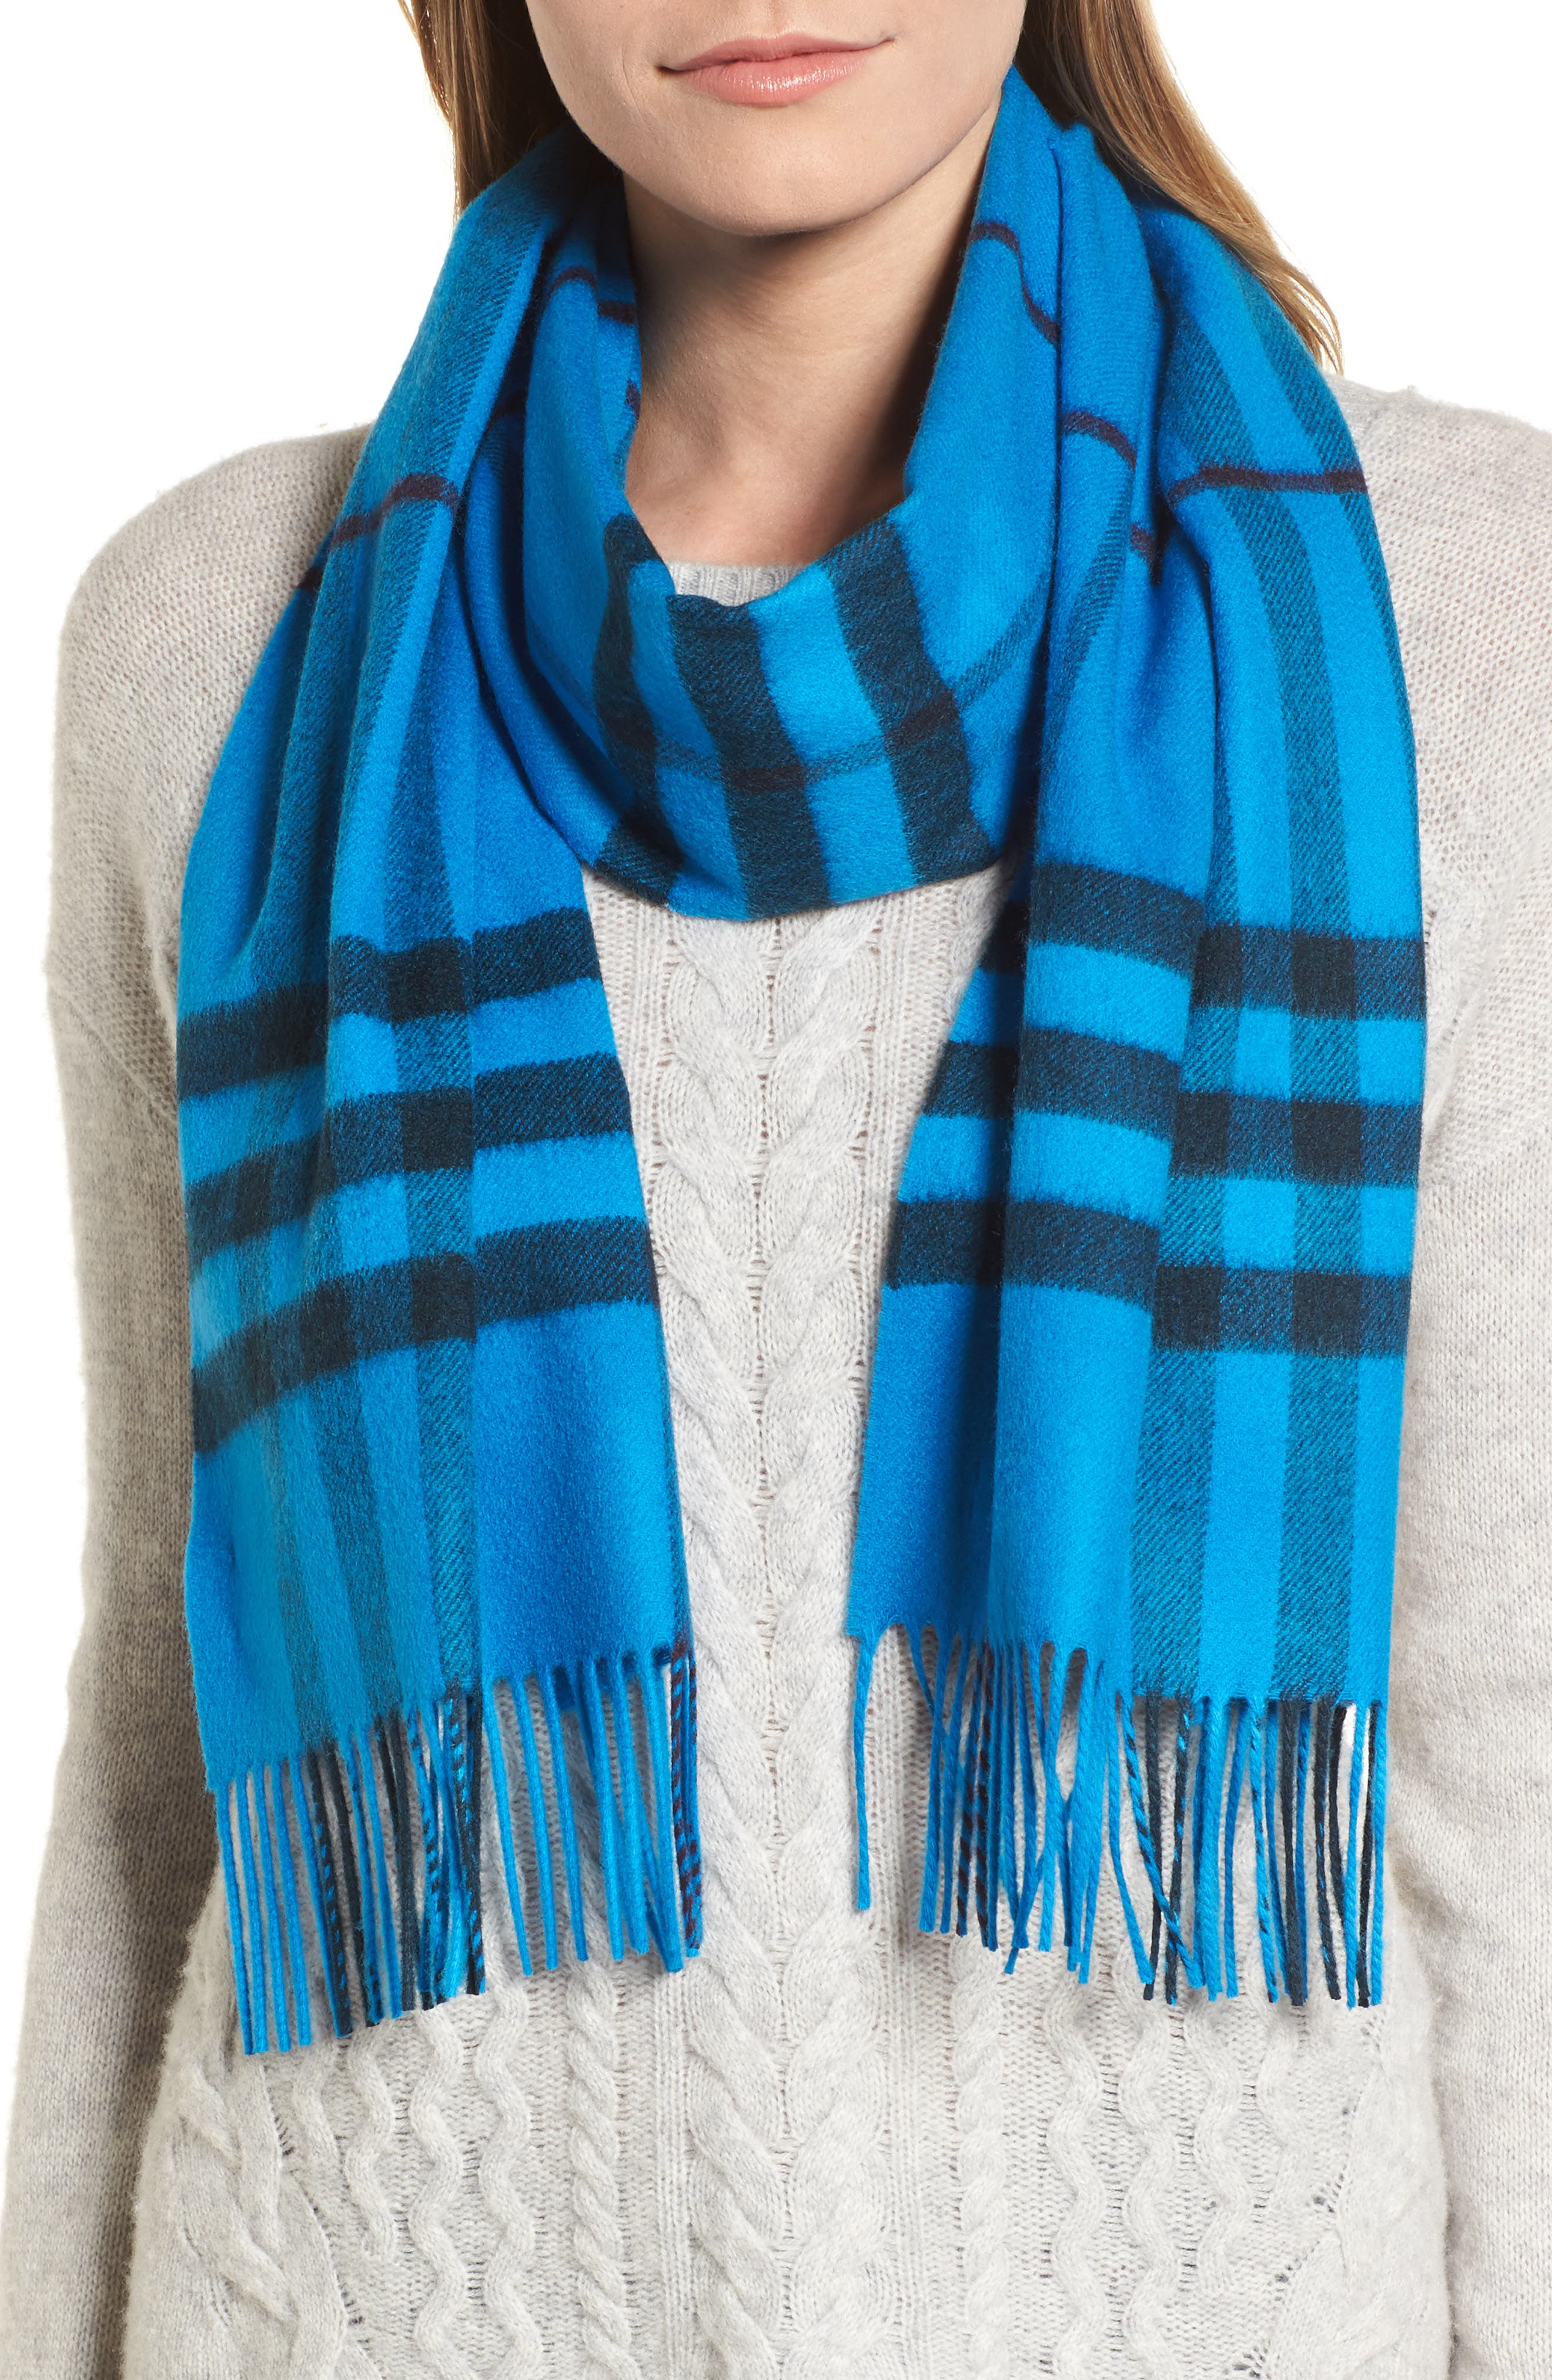 Overdyed Giant Check Cashmere Scarf,                             Alternate thumbnail 2, color,                             400